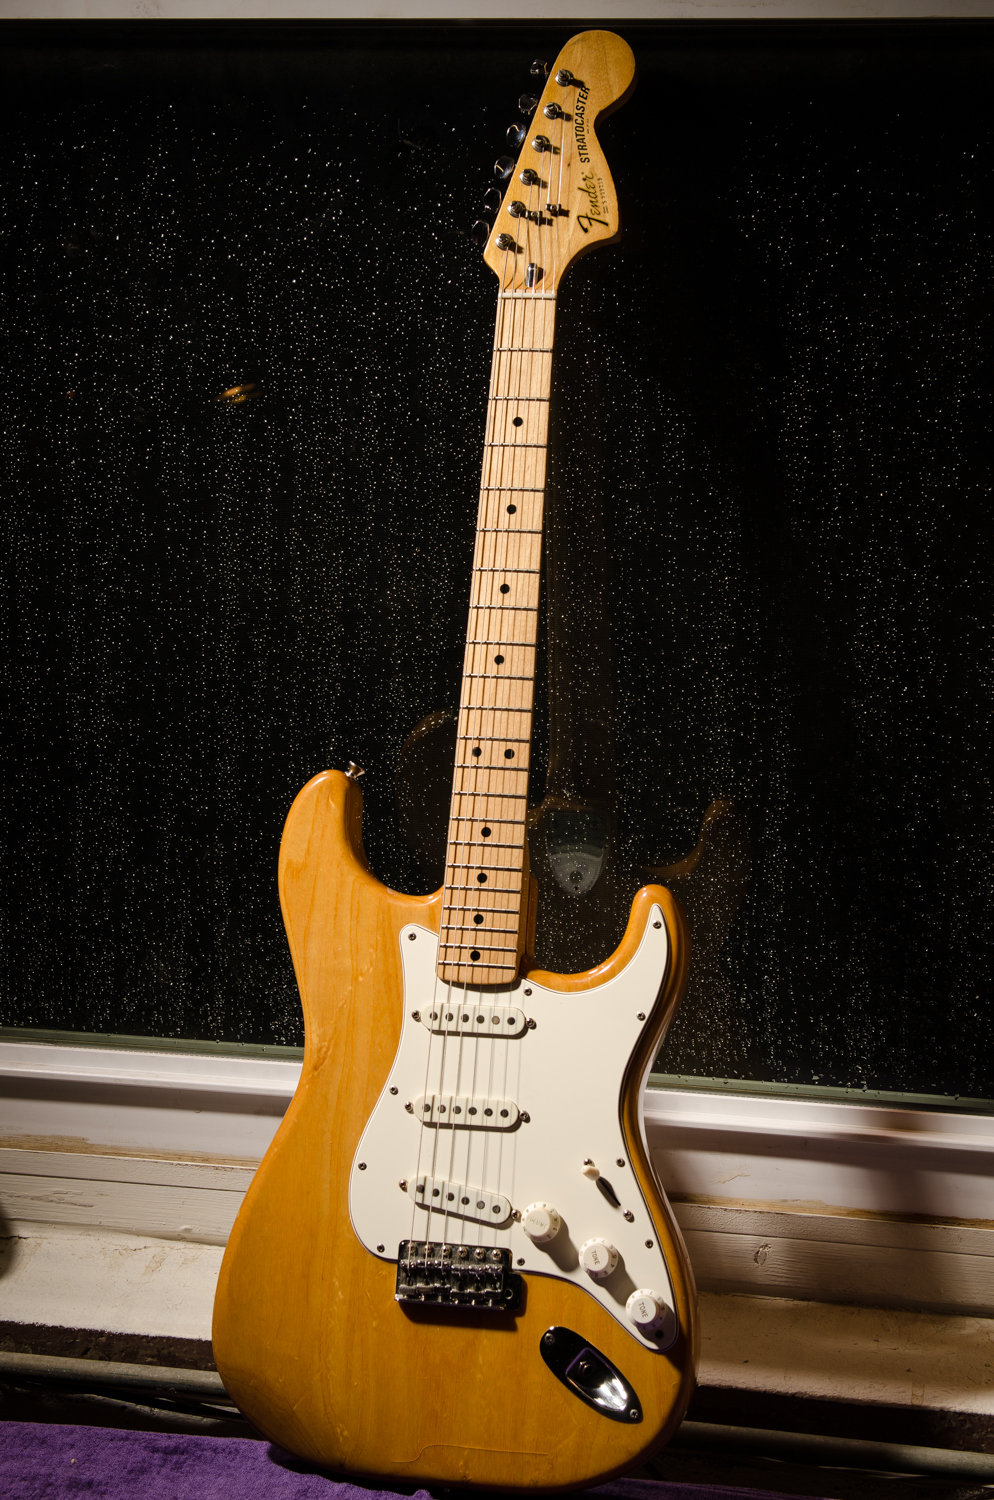 1979 Fender Strat back to it's stock configuration, now with a new pickguard, frets and a new bone nut. I always love Strat's 4th position, which is the middle and bridge pickup together – spanky and funky.